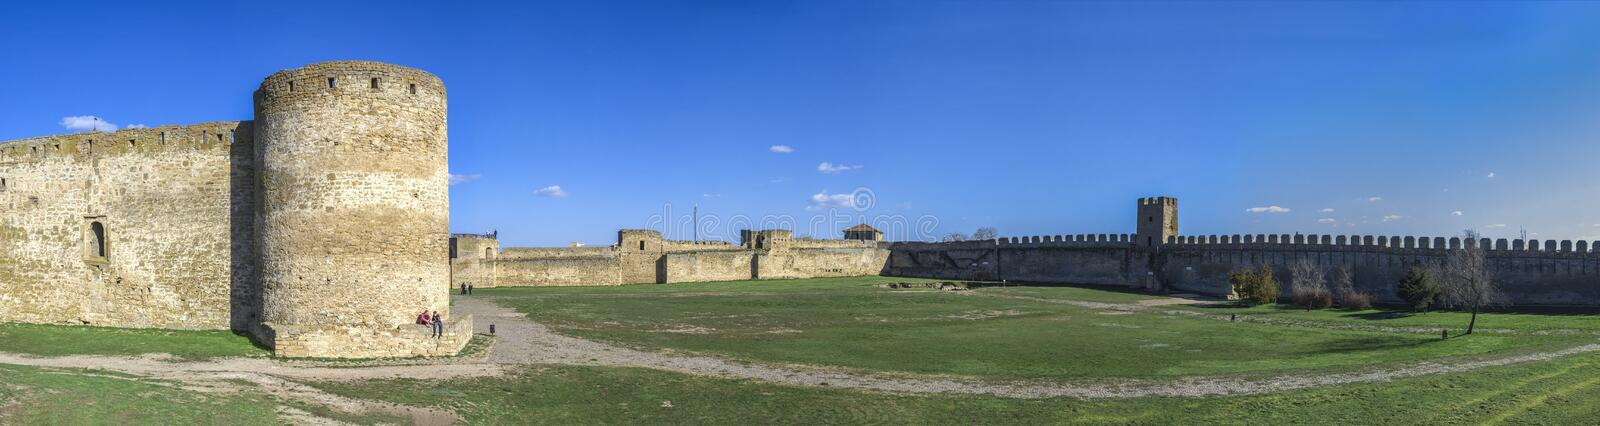 Fortress Walls of the Akkerman Citadel in Ukraine stock images